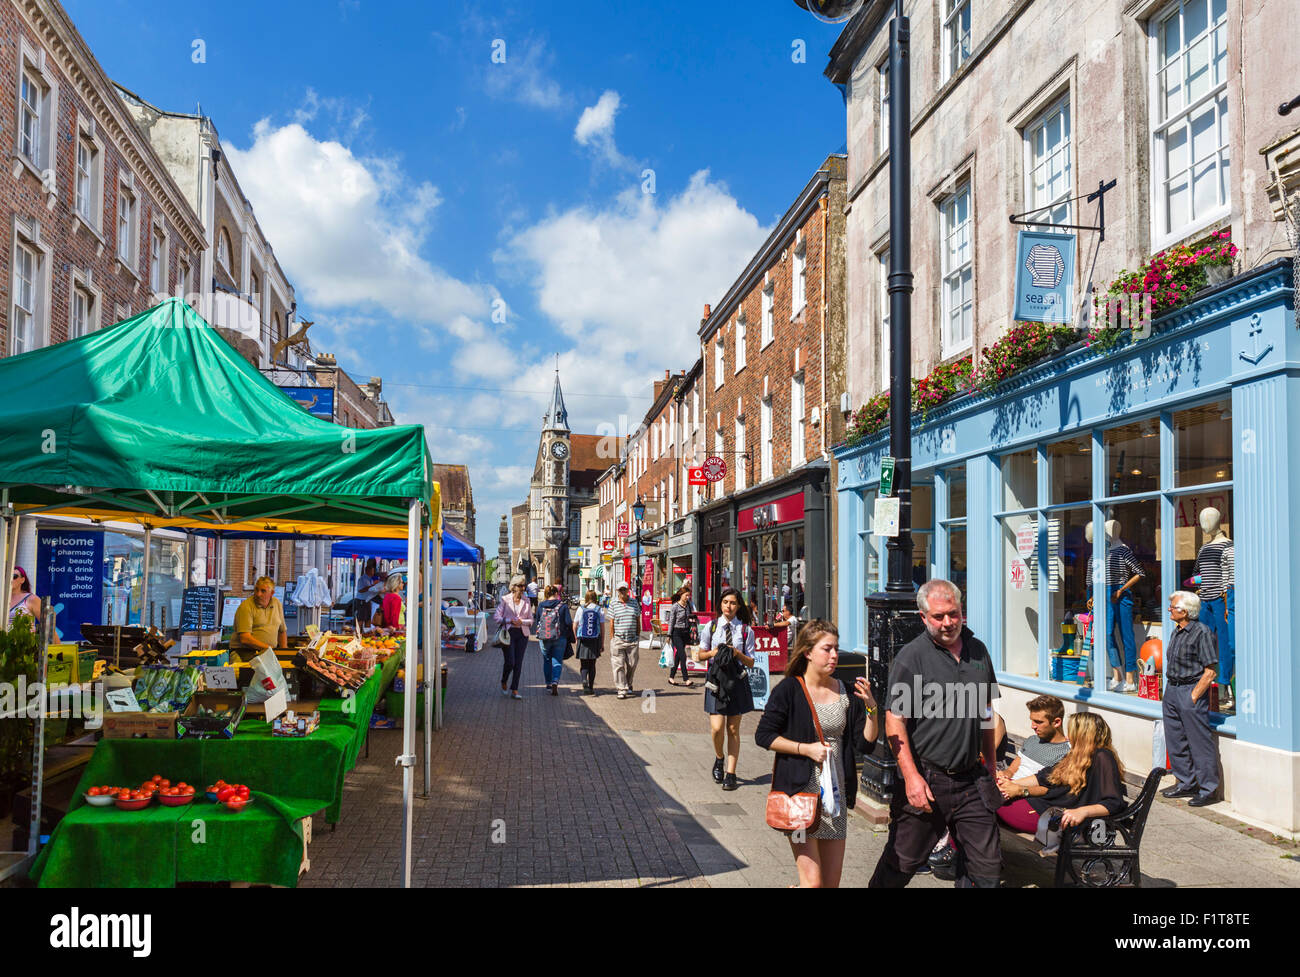 Shops and market stalls on Cornhill in the town centre, Dorchester, Dorset, England, UK - Stock Image